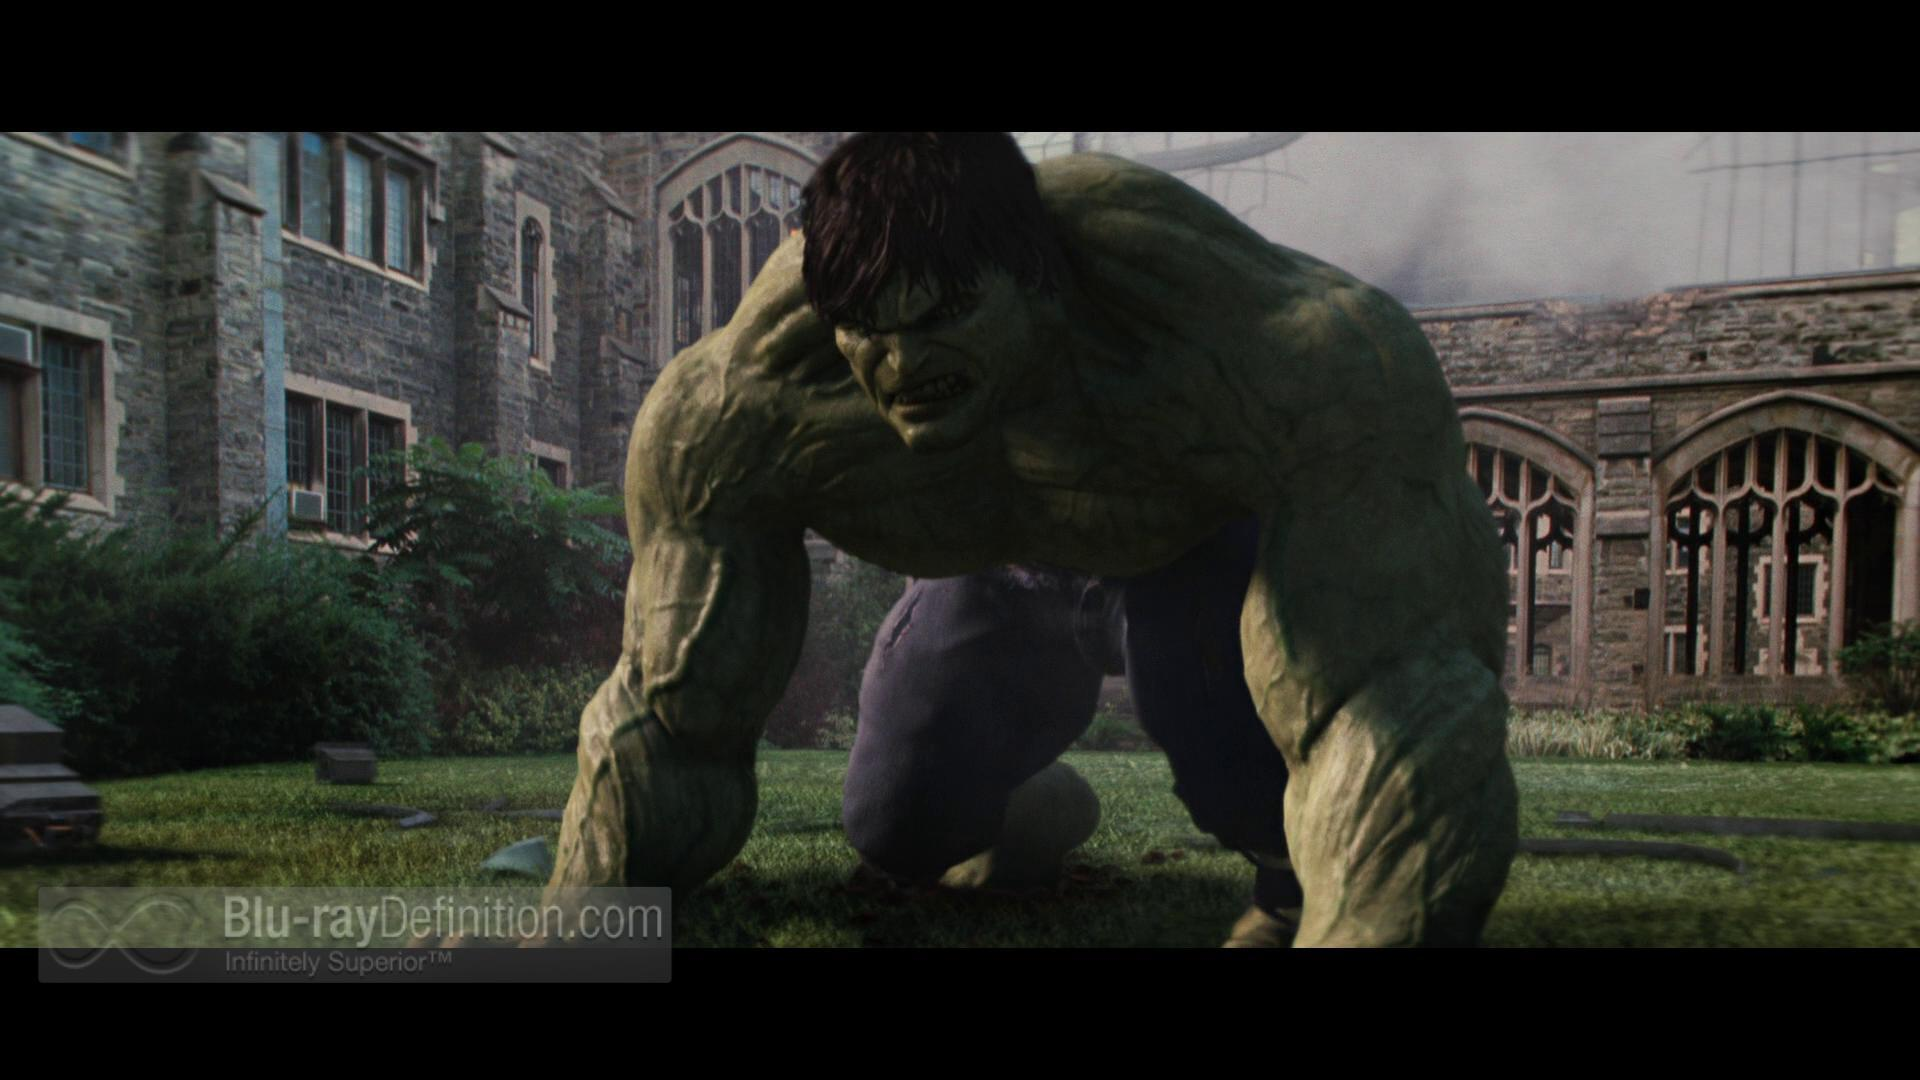 Hulk Movie Wallpapers   Top Hulk Movie Backgrounds 1920x1080